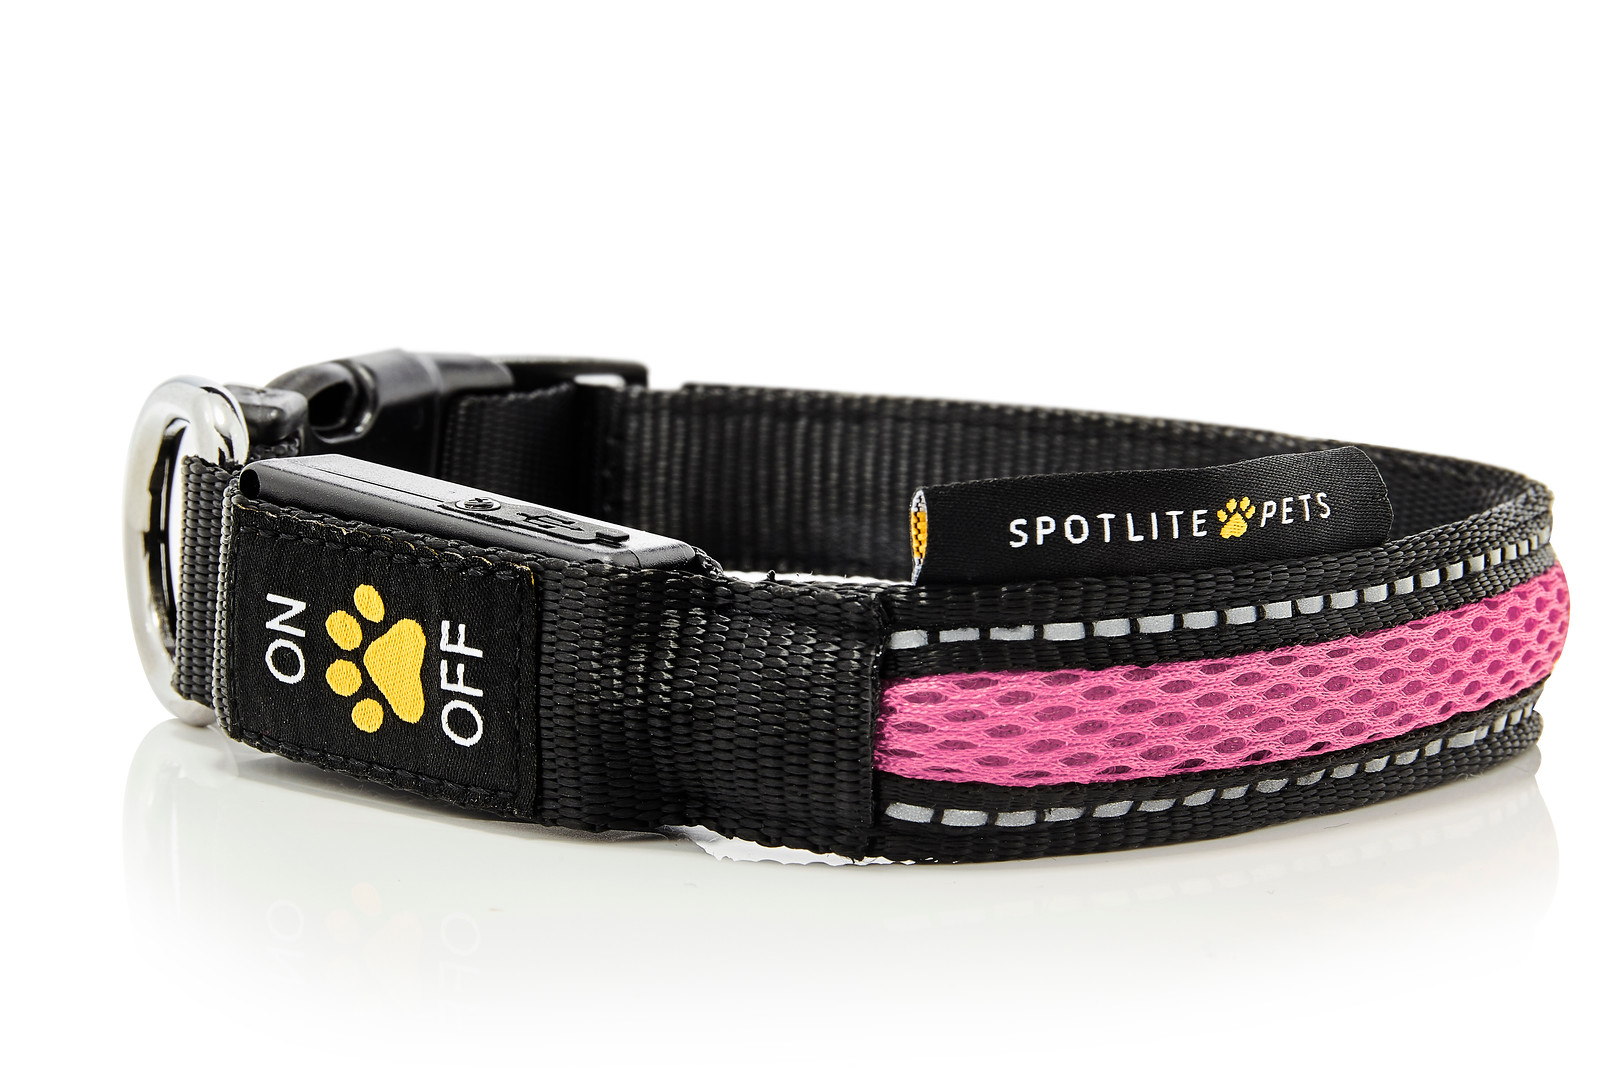 Pink_Collars_Leashes_Spotlite_Pets-X3.jpg